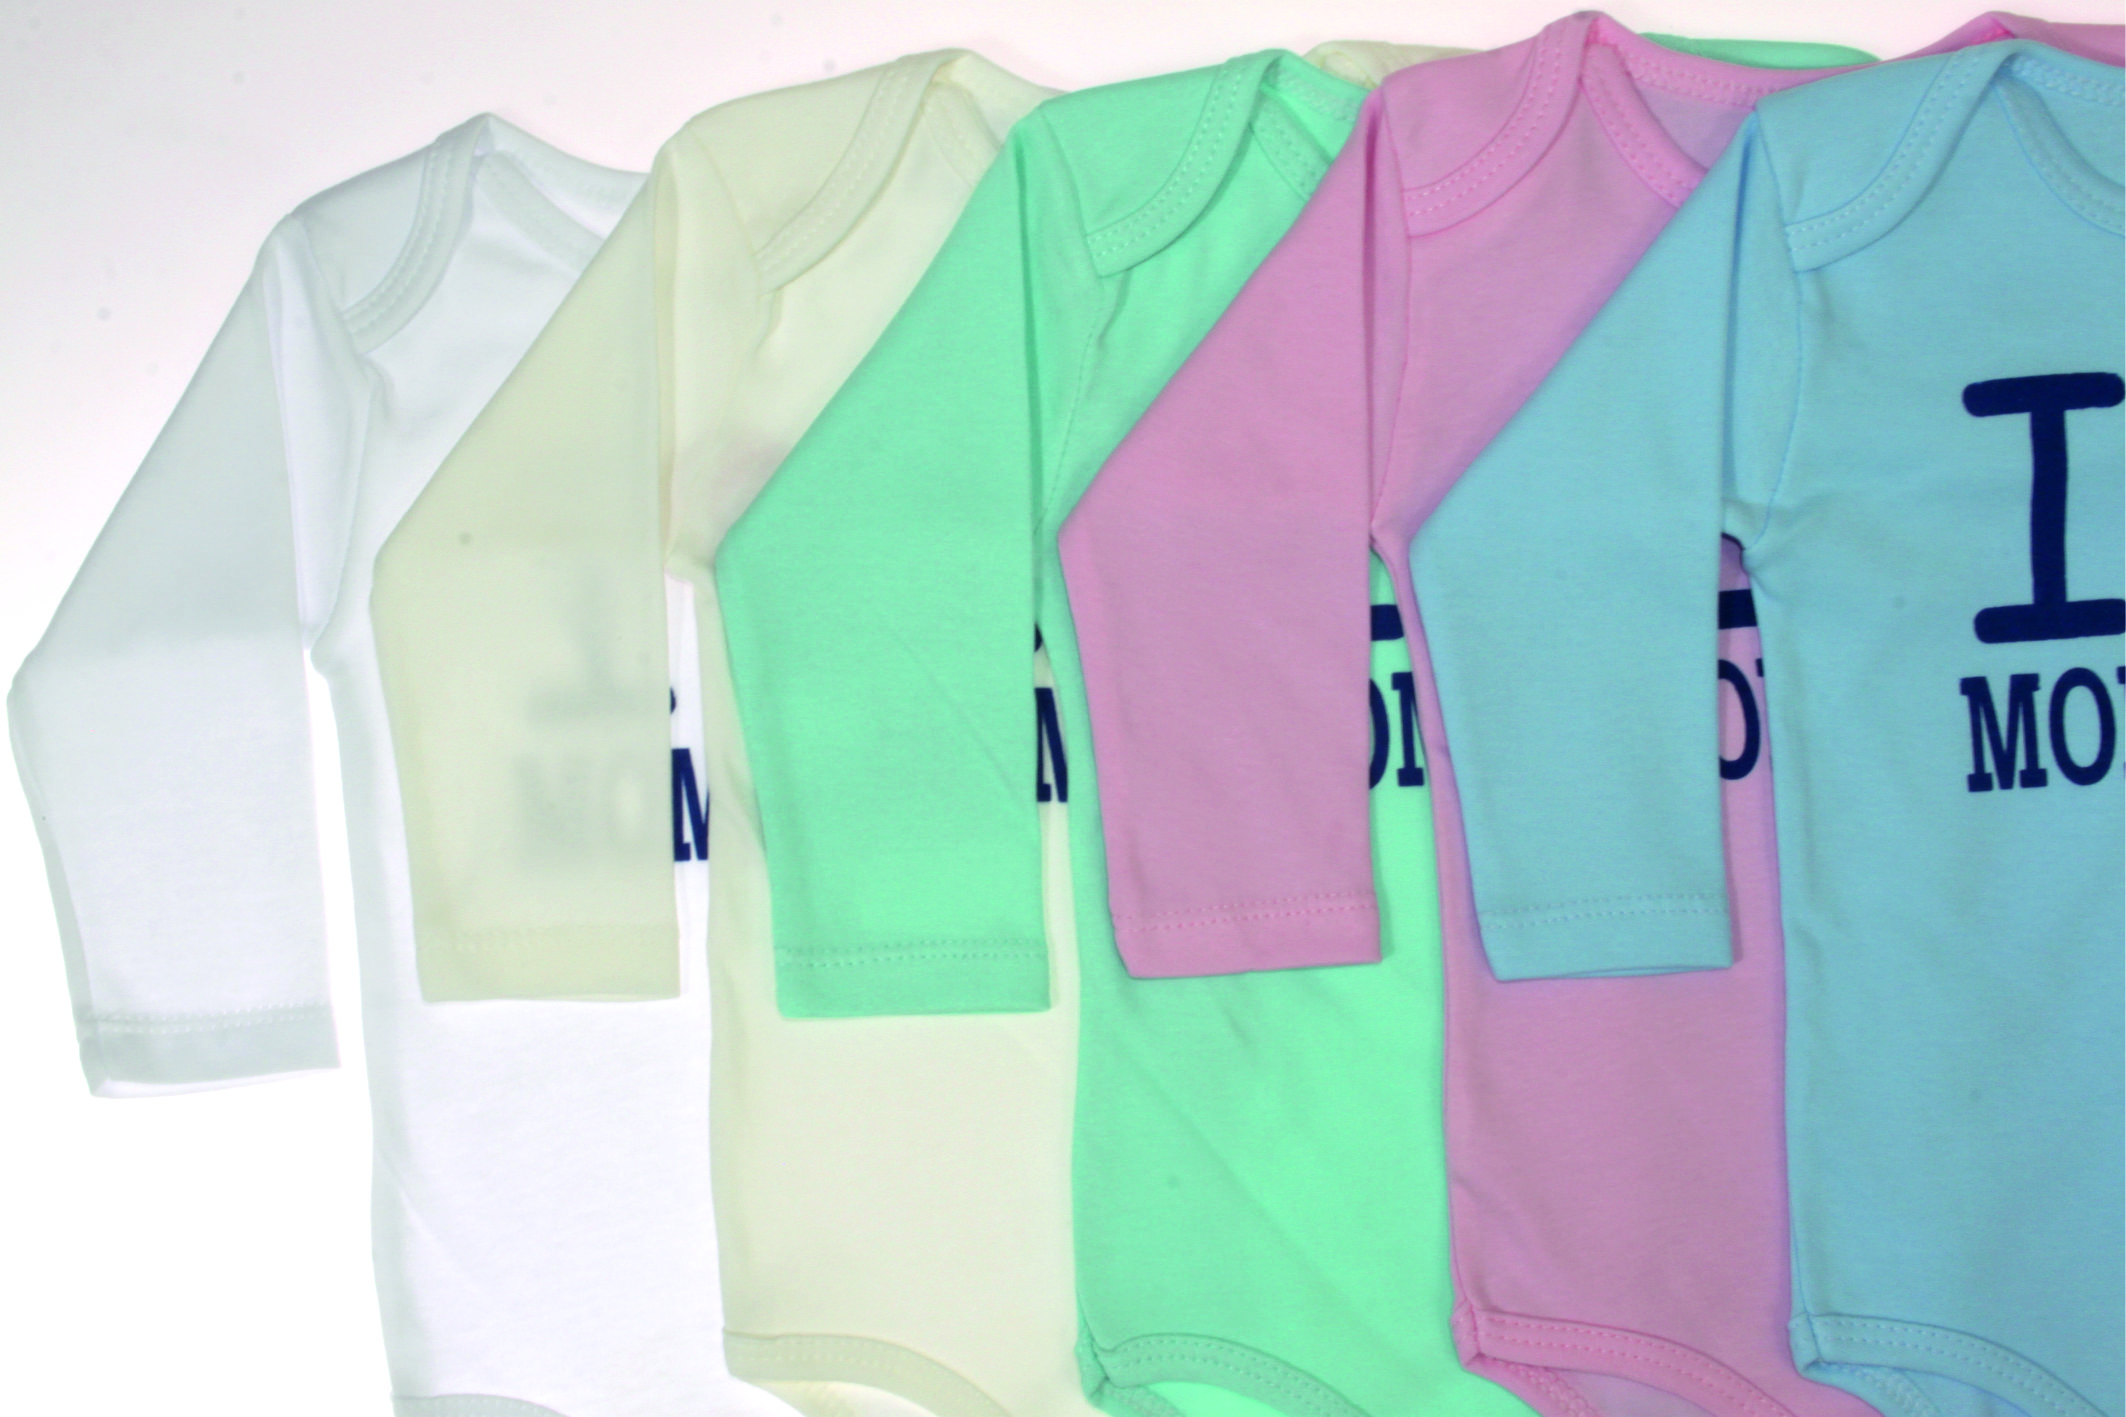 100% Cotton antiallergic fabric guarantee. Over a hundred color and model options for all categories.